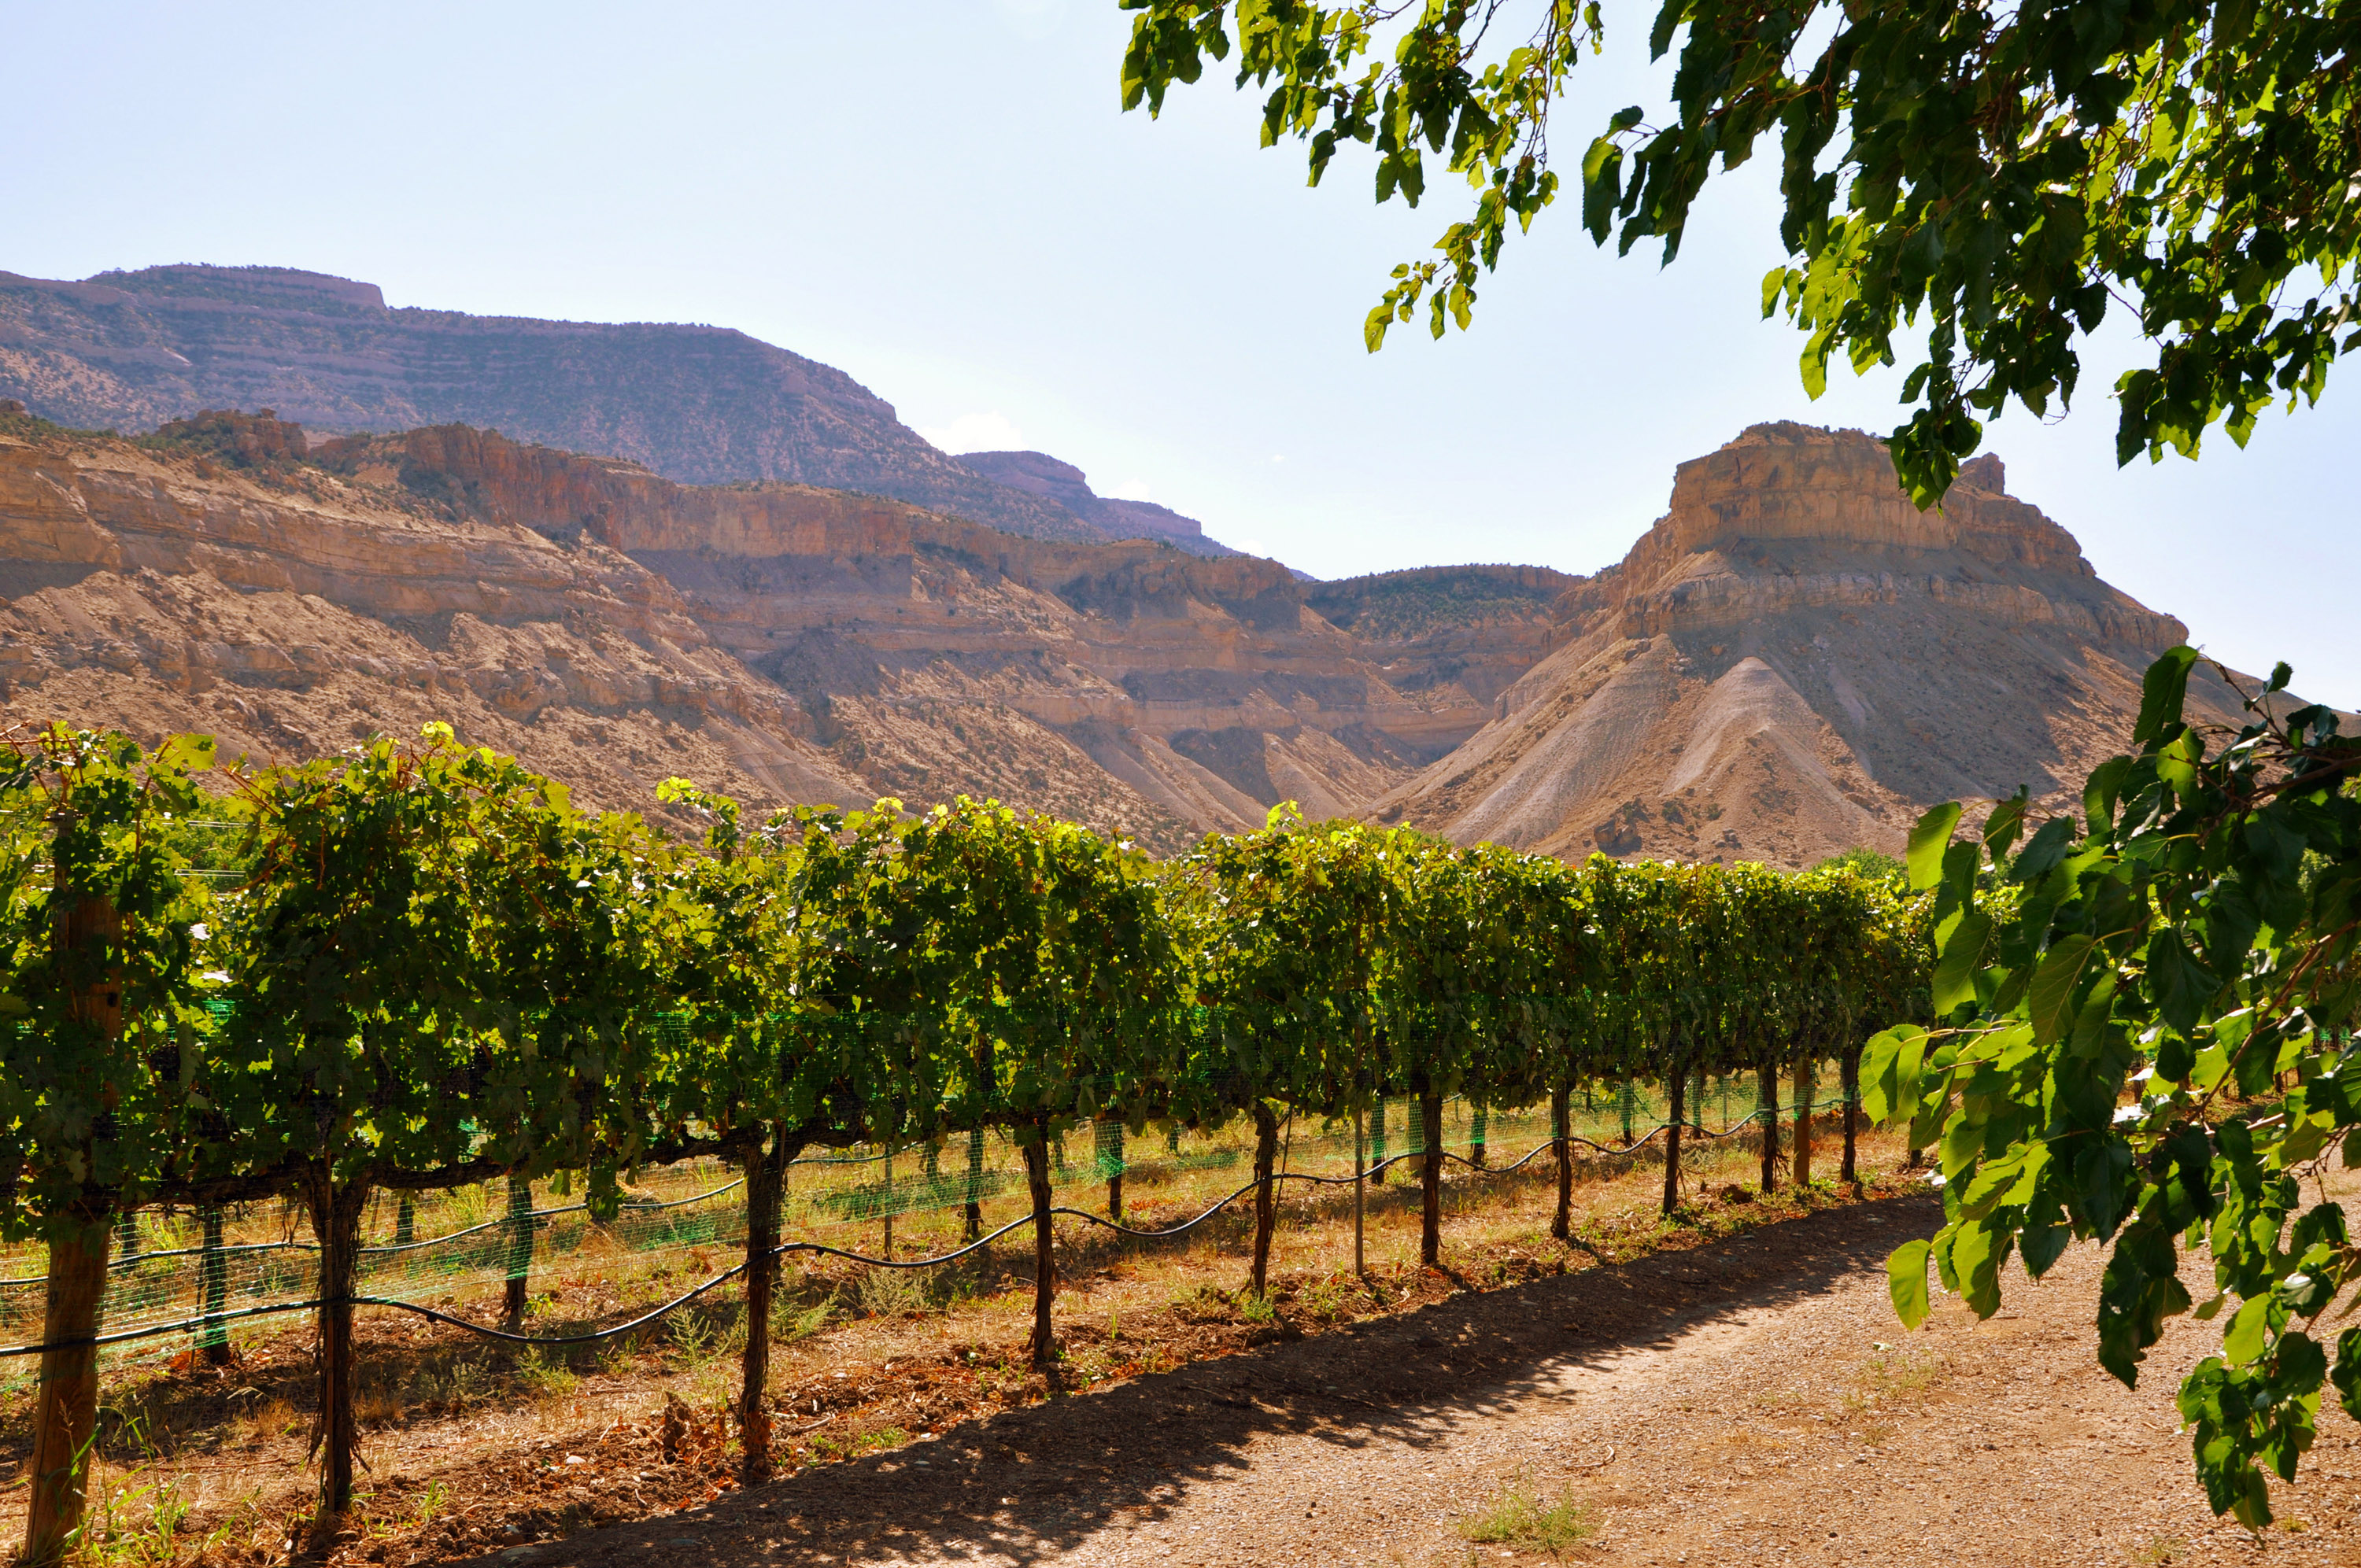 Vineyard in Grand Junction, CO